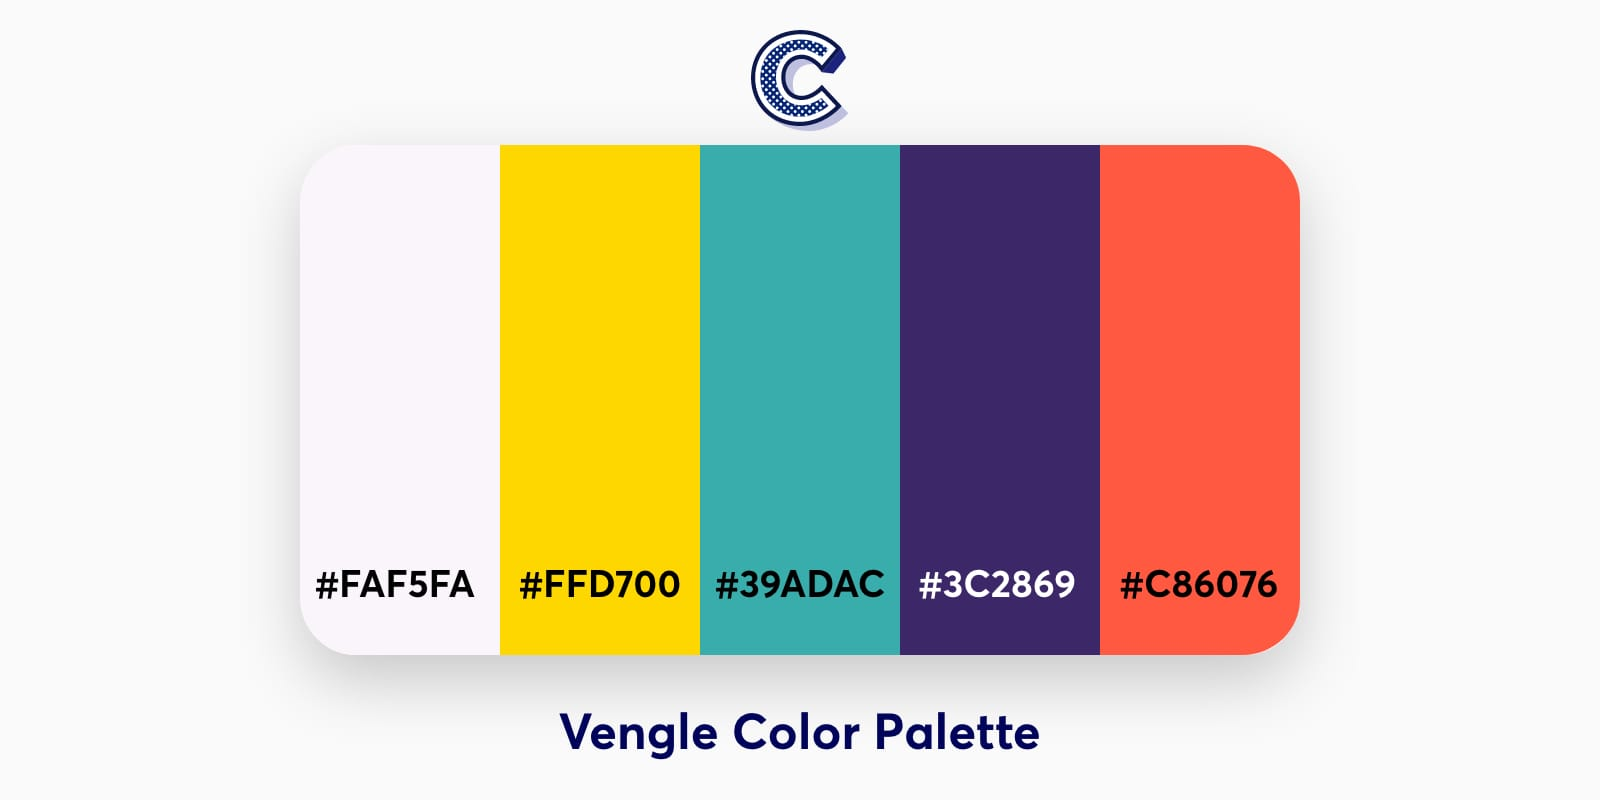 the featured image of vengle color palette